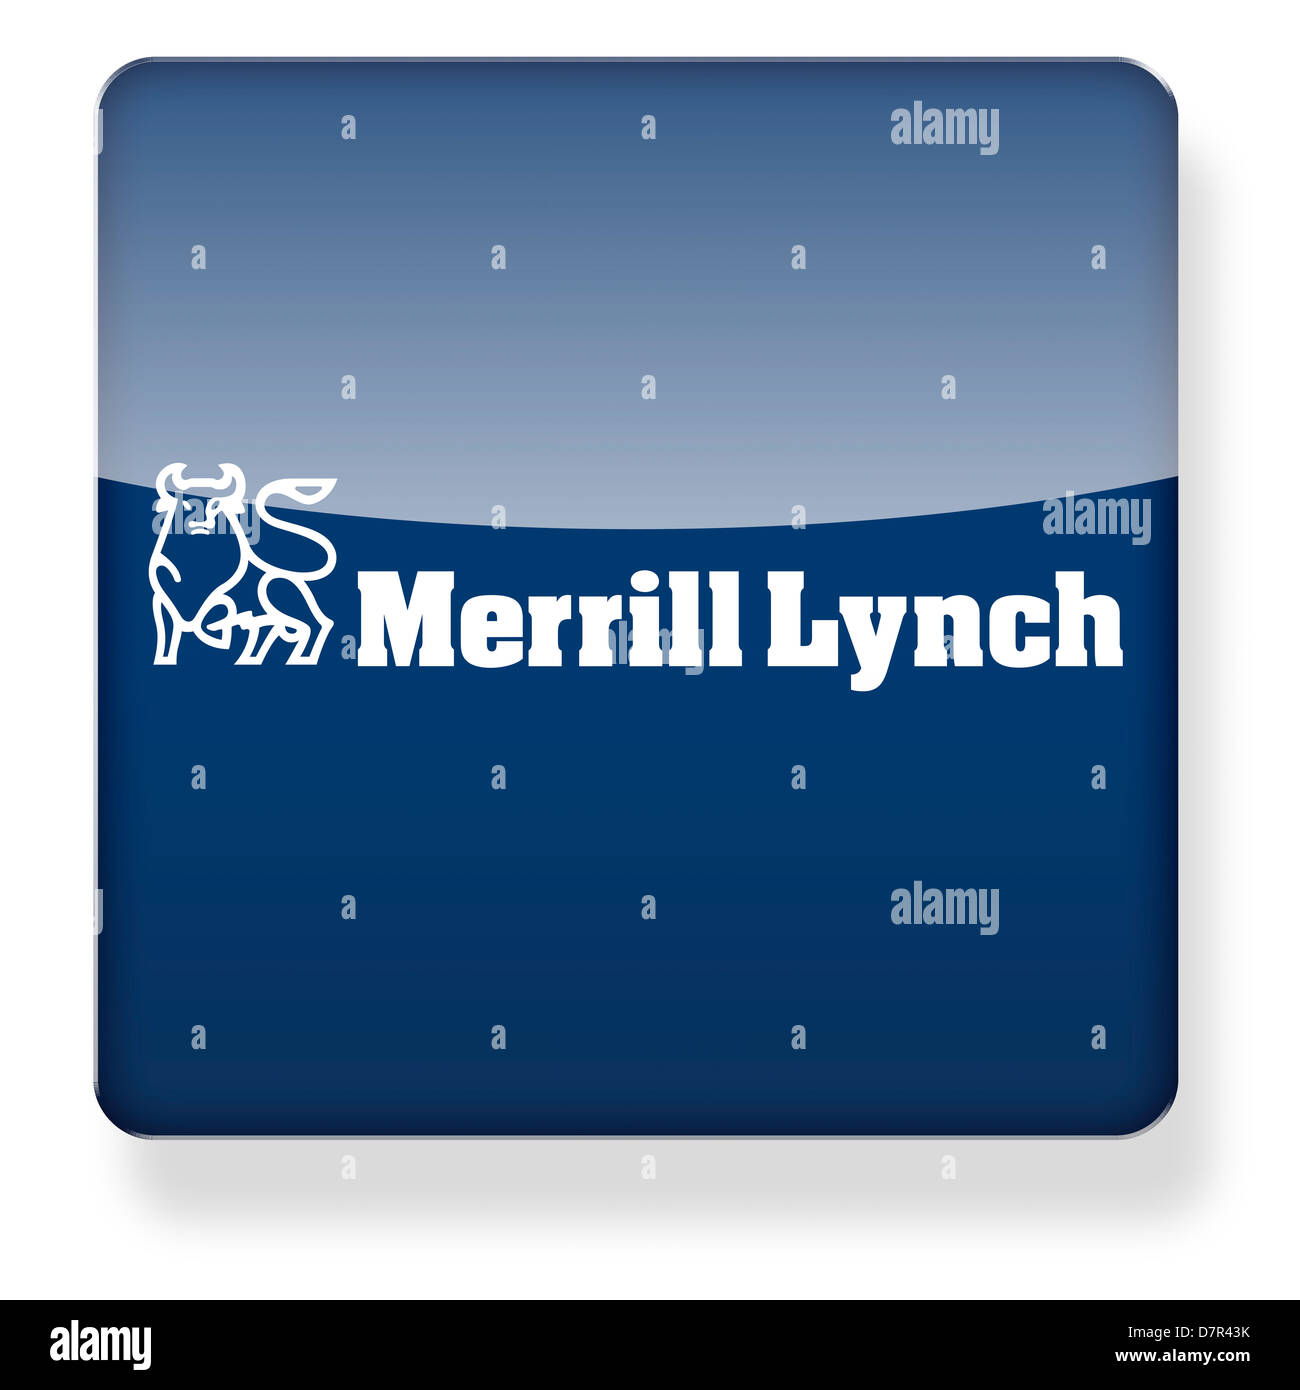 Comcast stock options merrill lynch